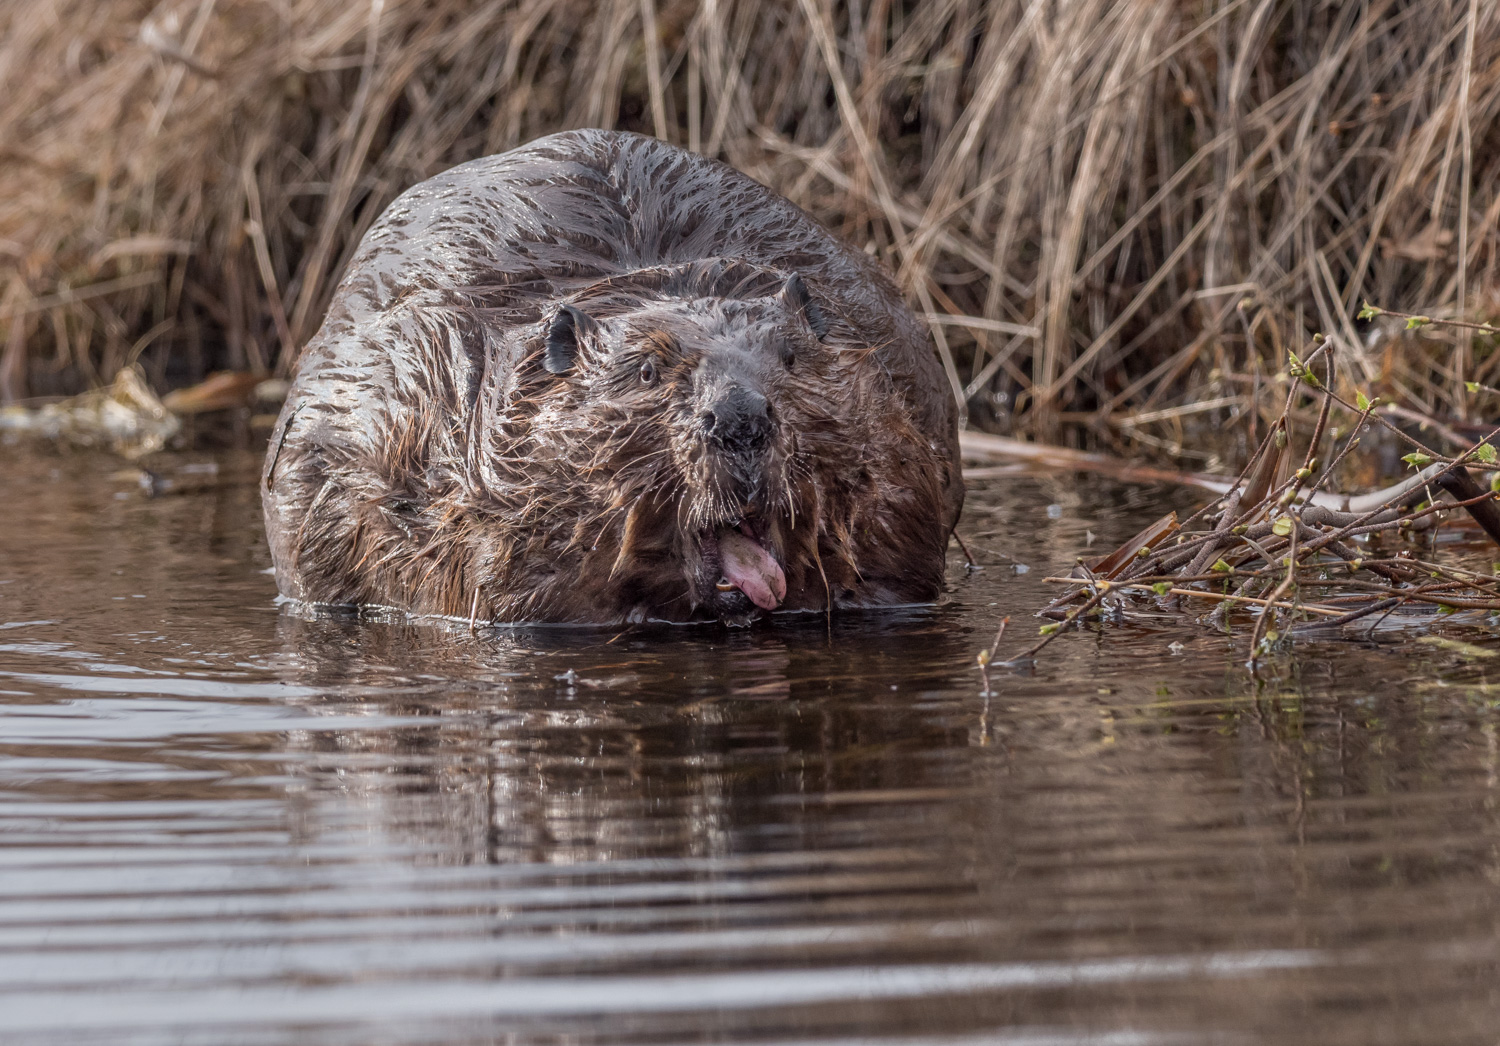 A Guide to Photographing Birds and Wildlife in a Wetland Area - beaver sticking his tongue out